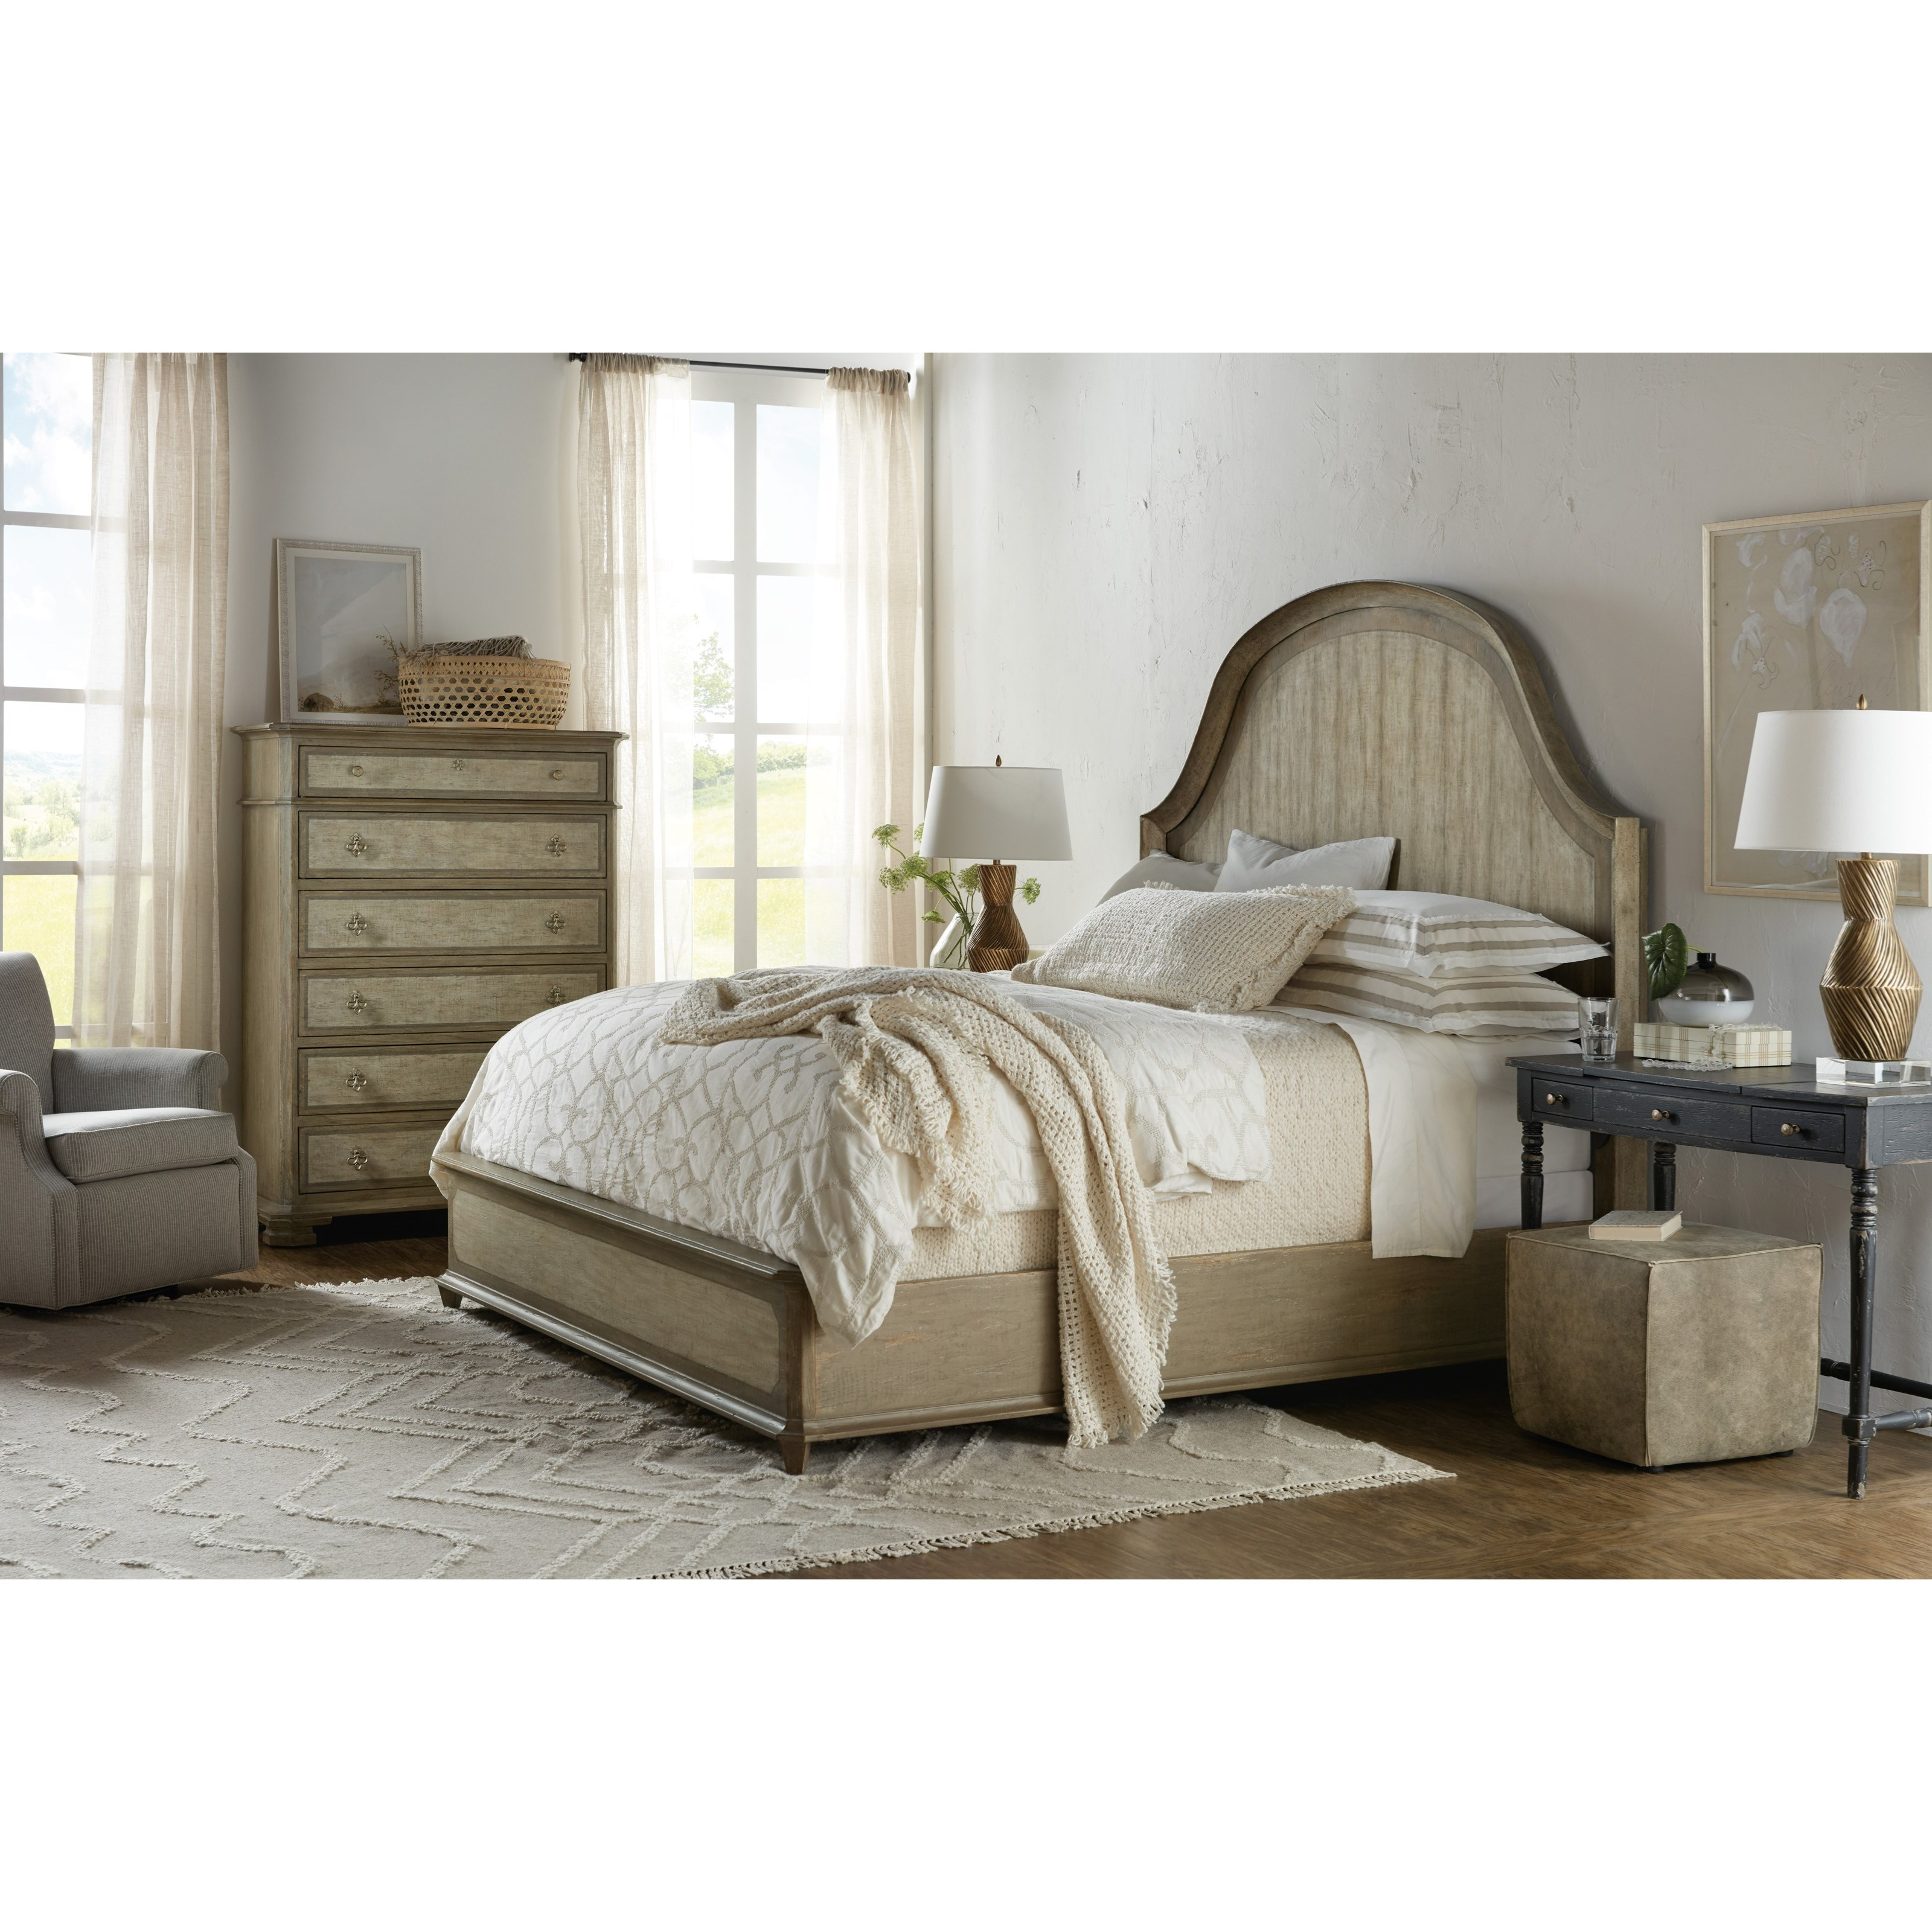 Alfresco King Bedroom Group by Hooker Furniture at Mueller Furniture